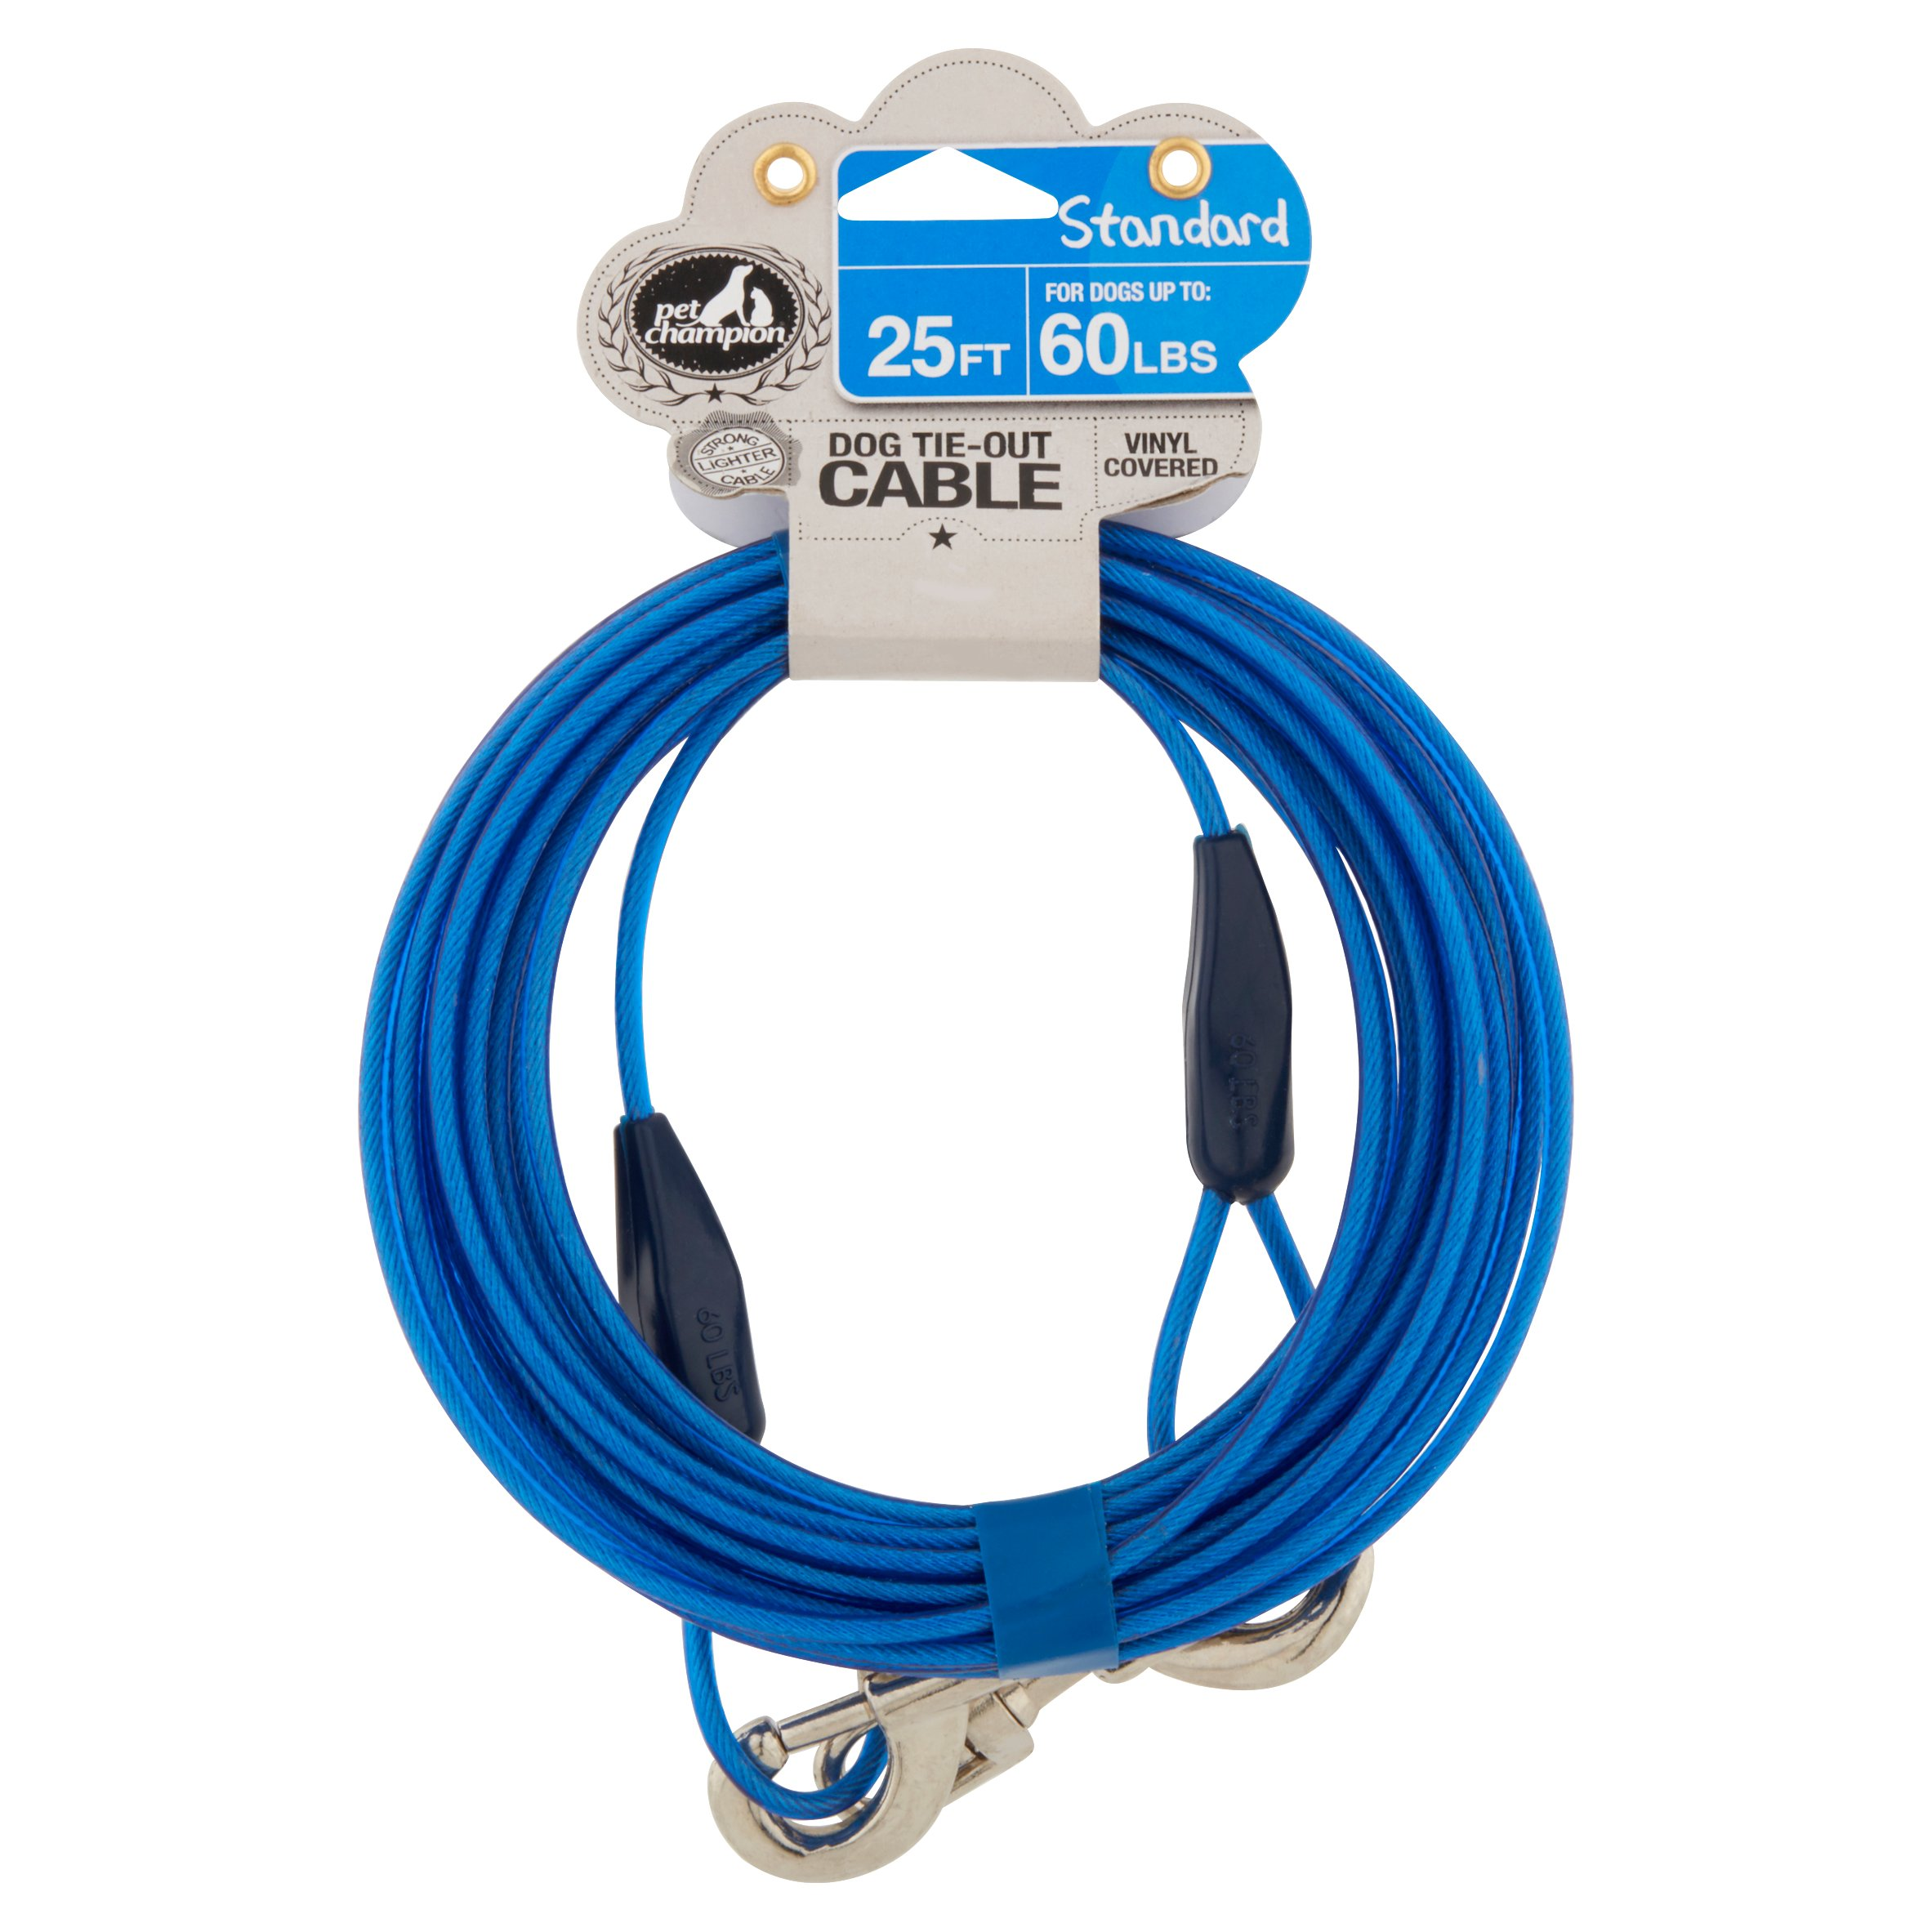 Pet Champion 25 ft Standard Dog Tie-Out Cable